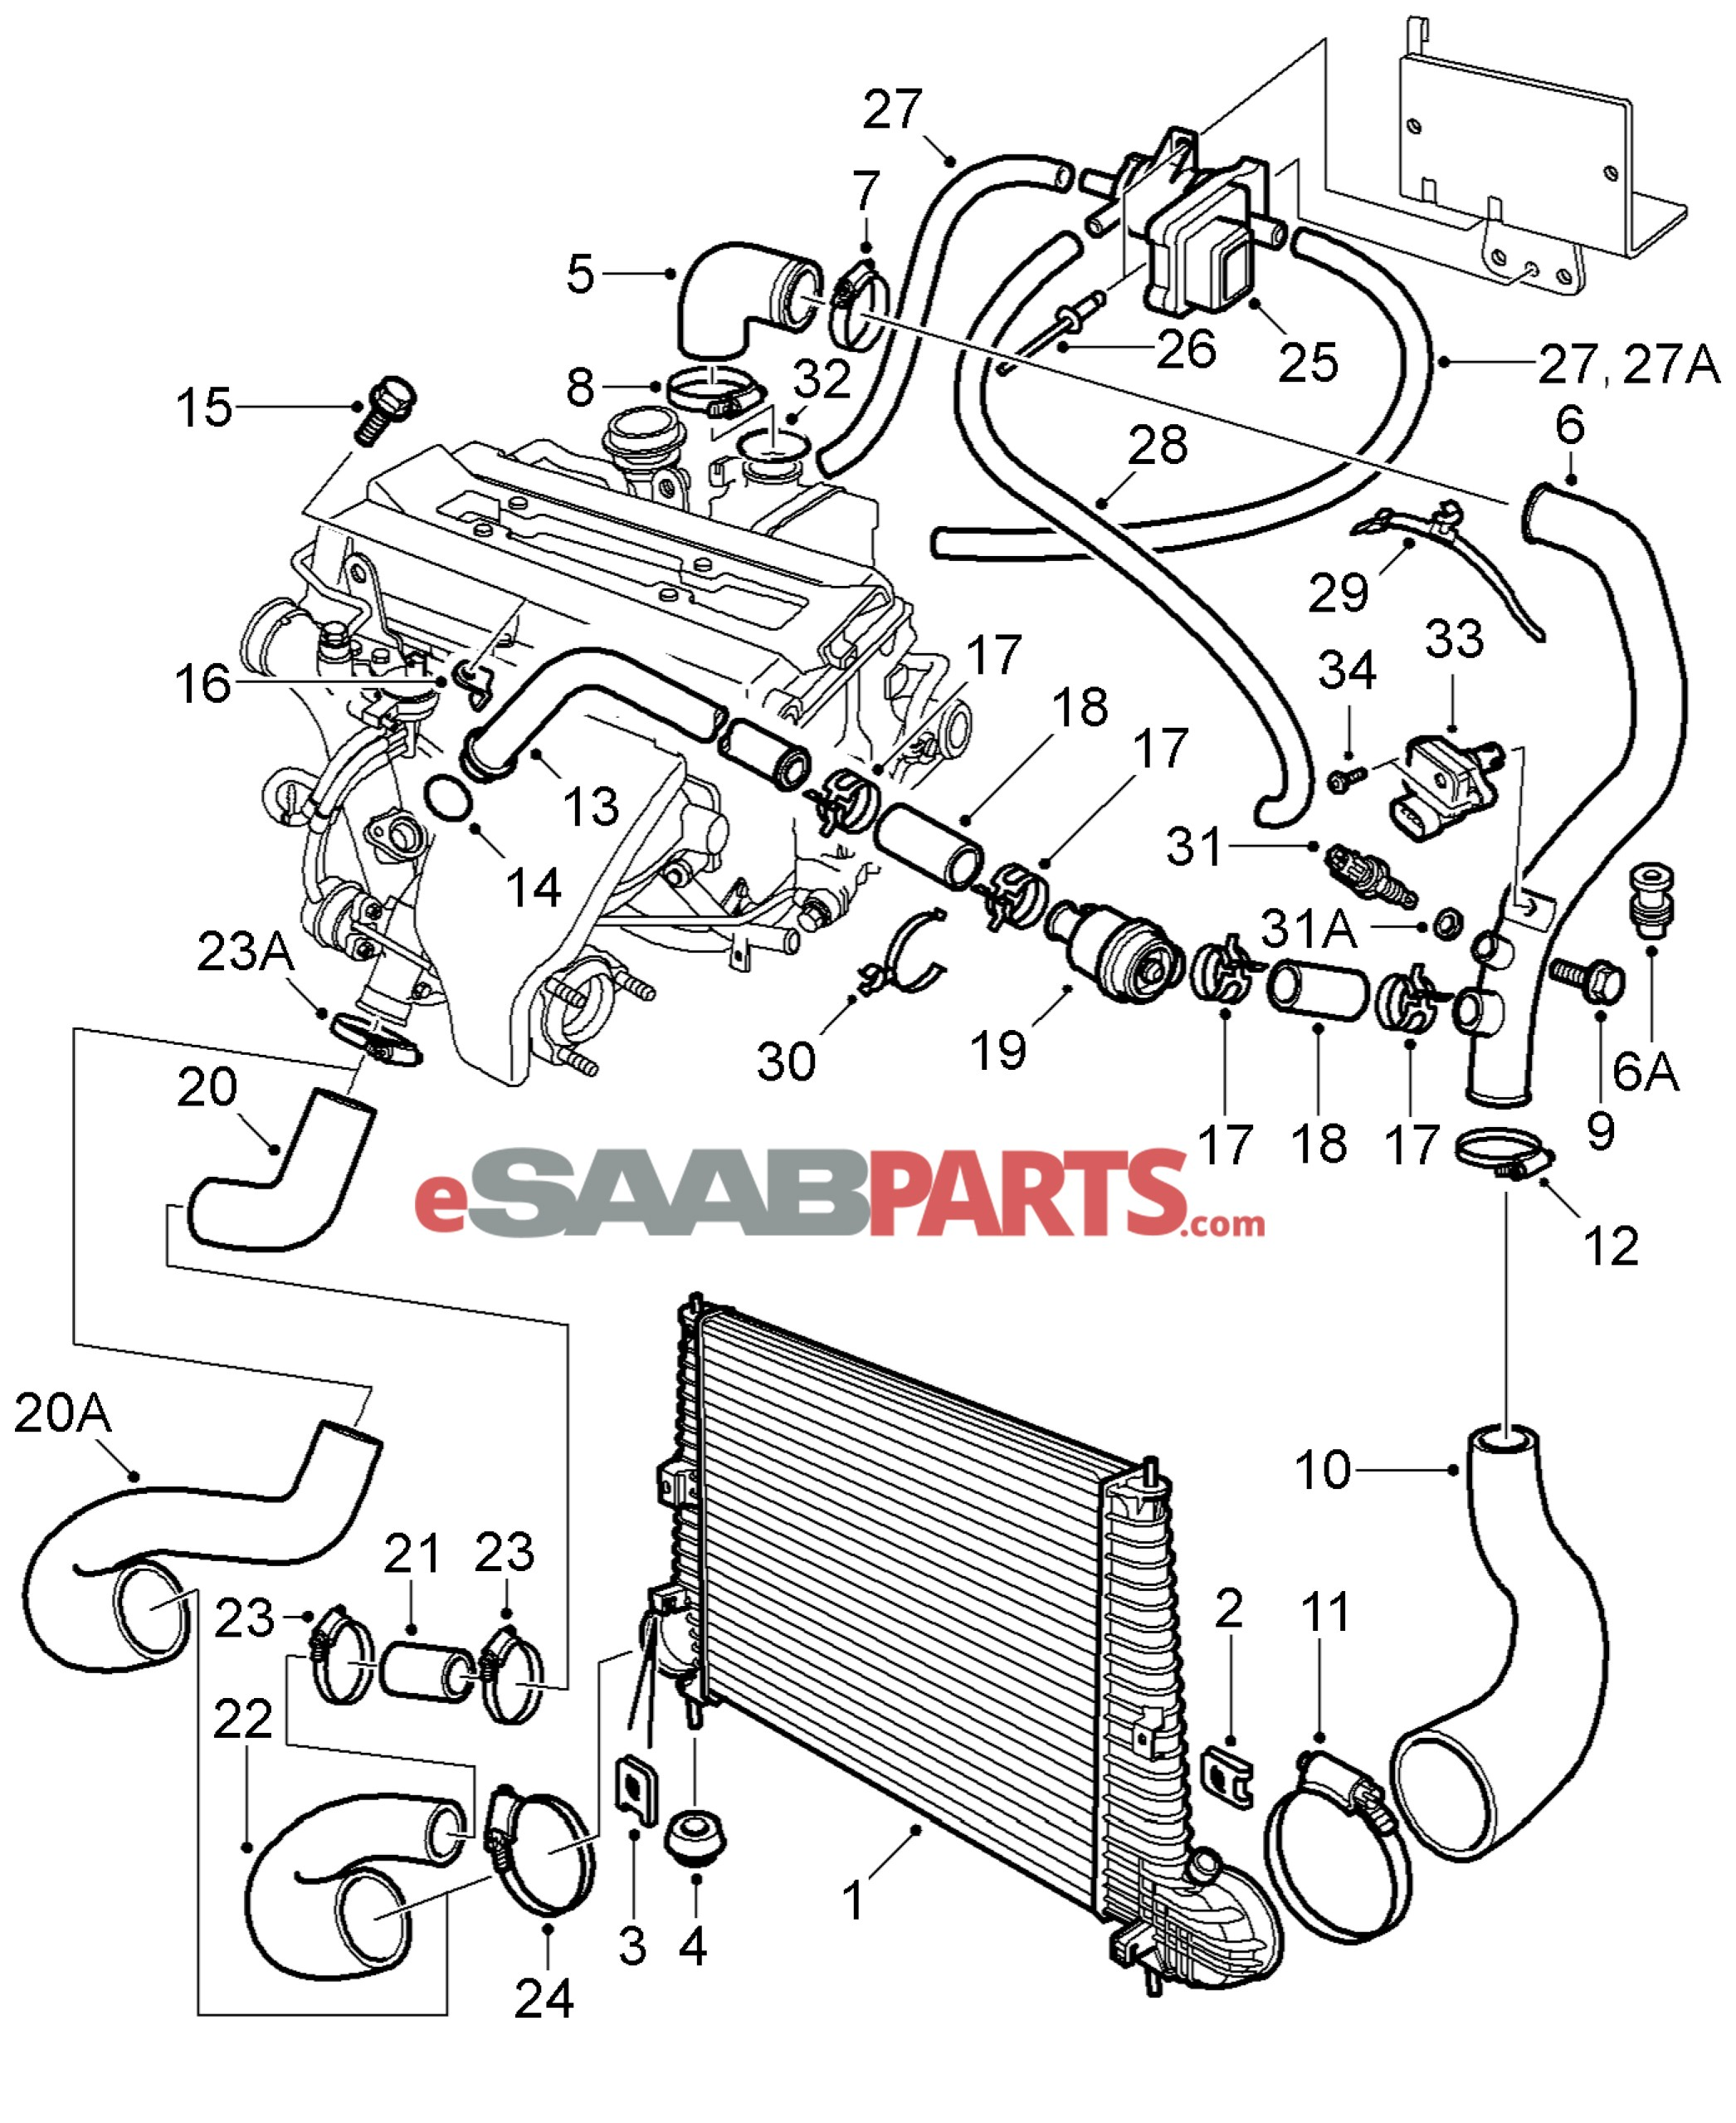 Saab engine diagram diy enthusiasts wiring diagrams u2022 rh broadway puters us 1996 saab 900 door diagrams